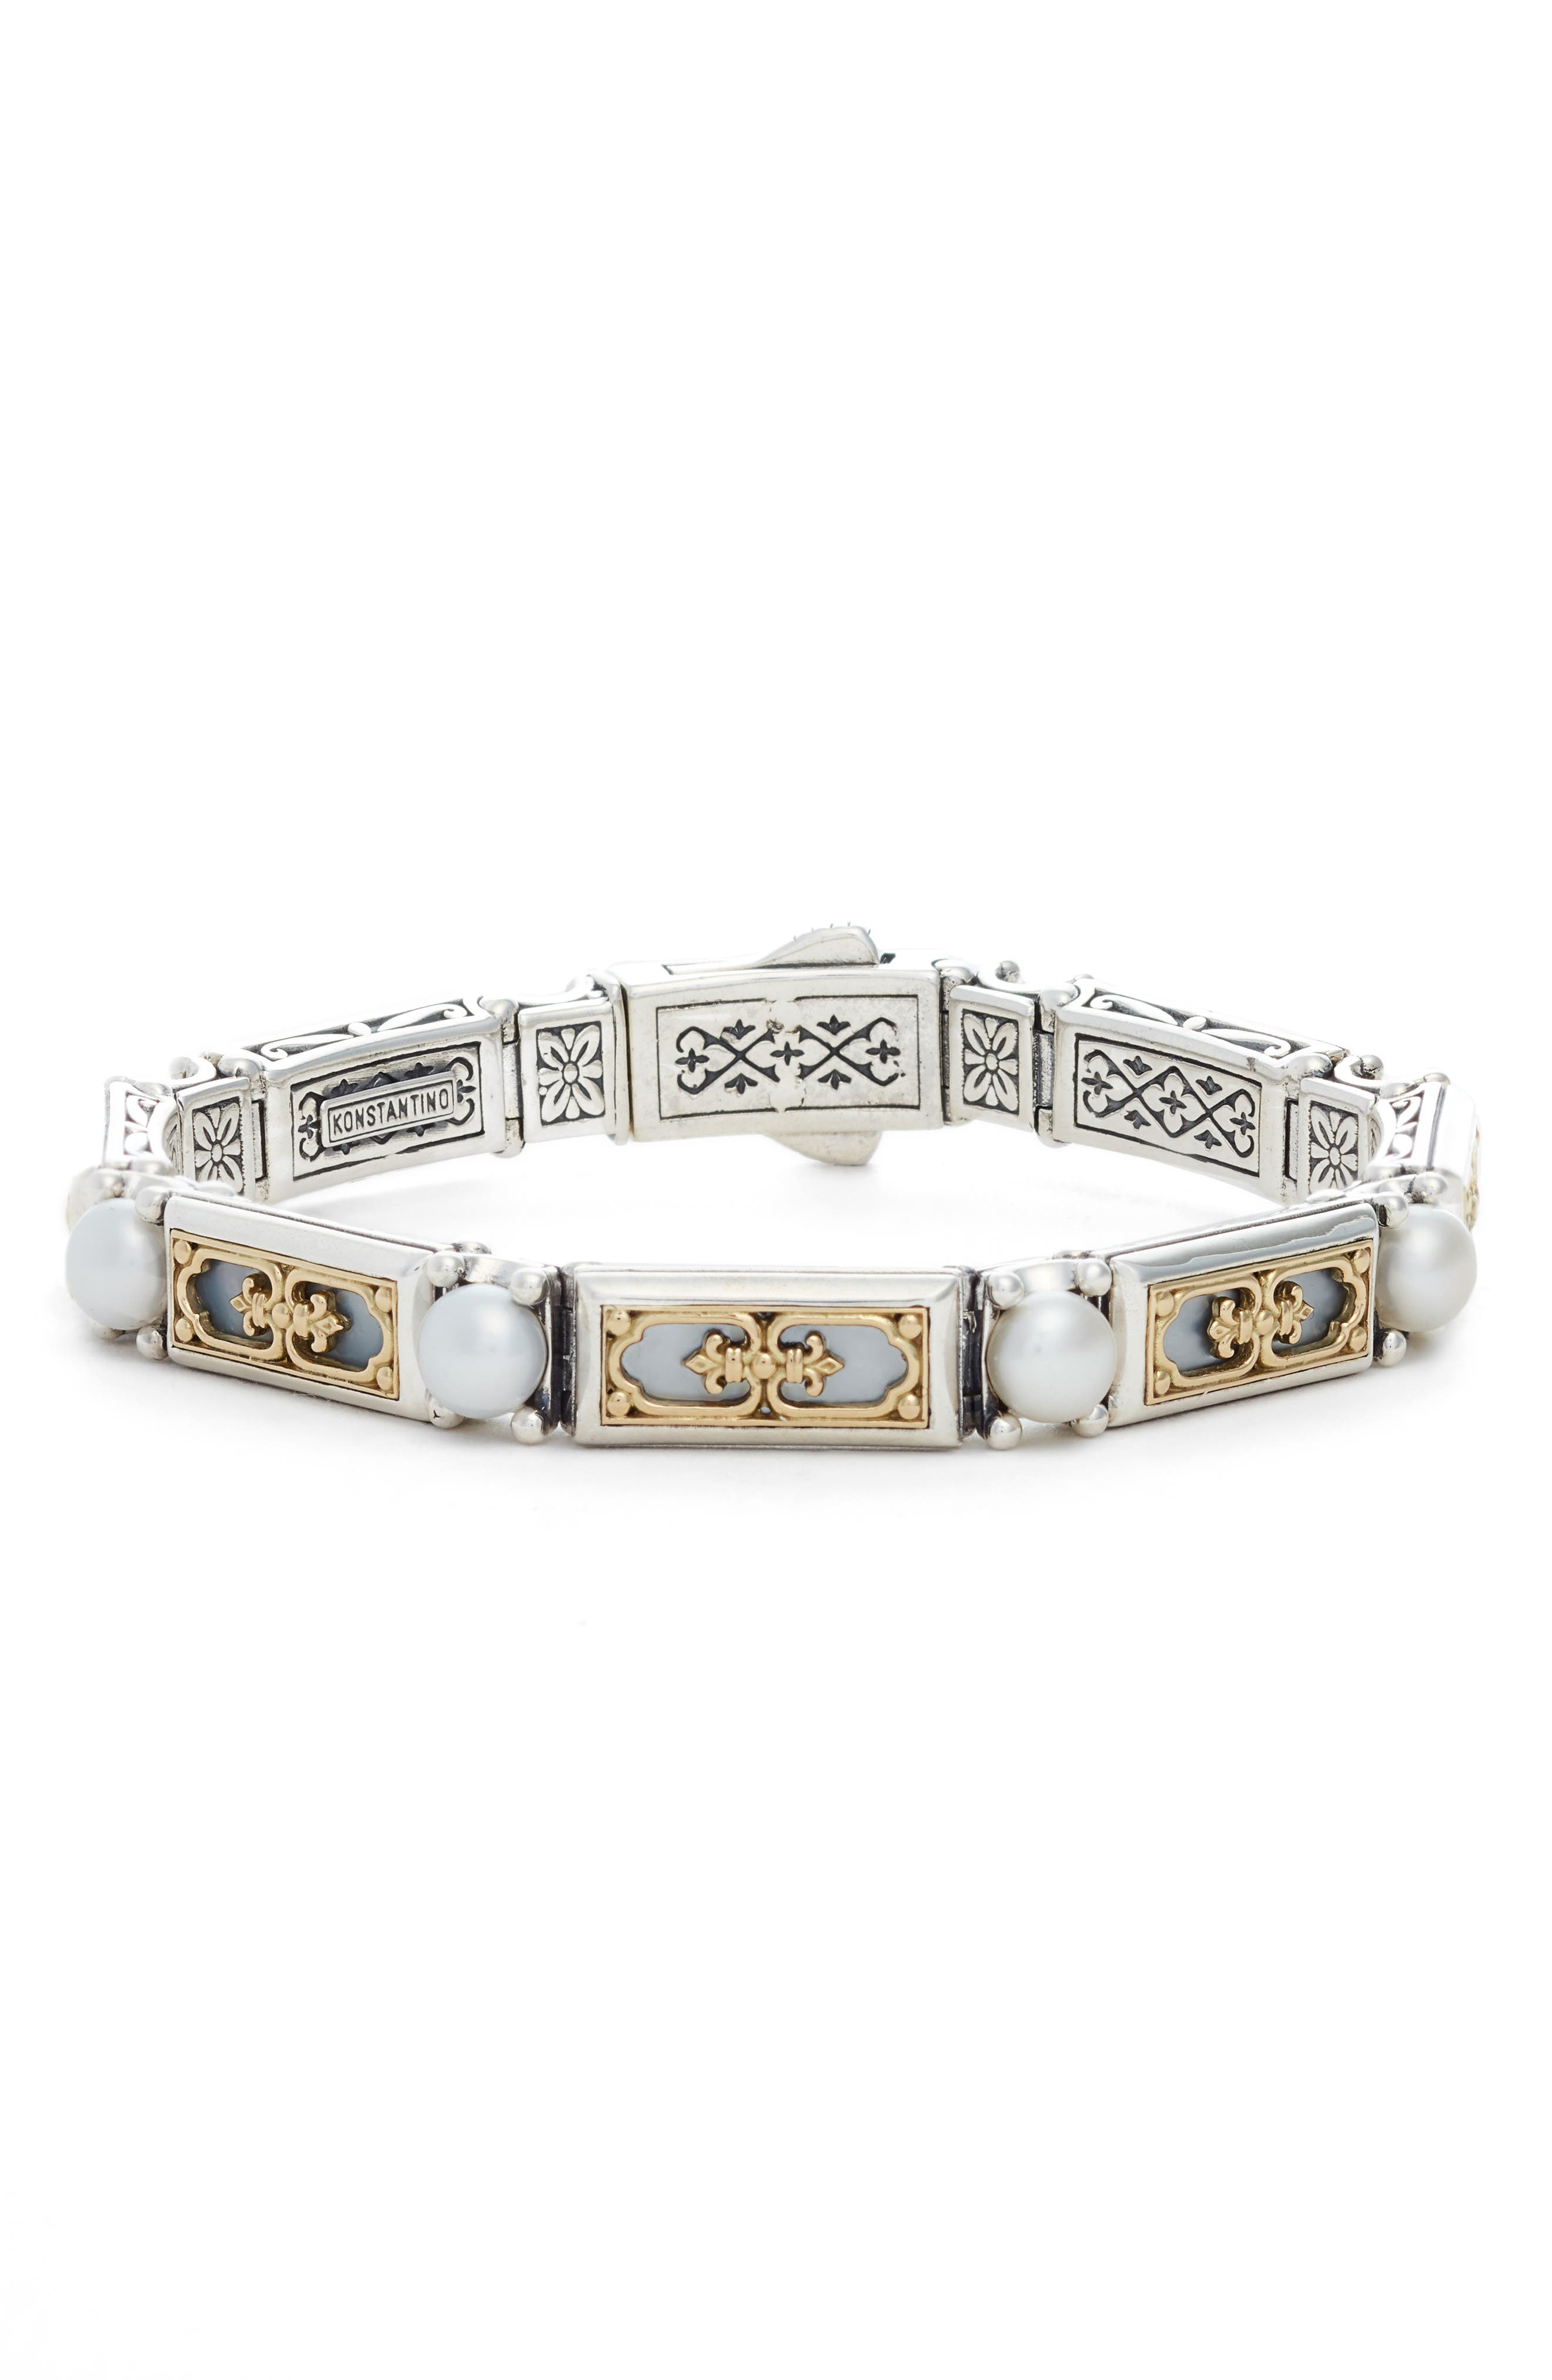 Etched Silver & Gold Link Bracelet with Genuine Pearl,                             Main thumbnail 1, color,                             SILVER/ GOLD/ WHITE